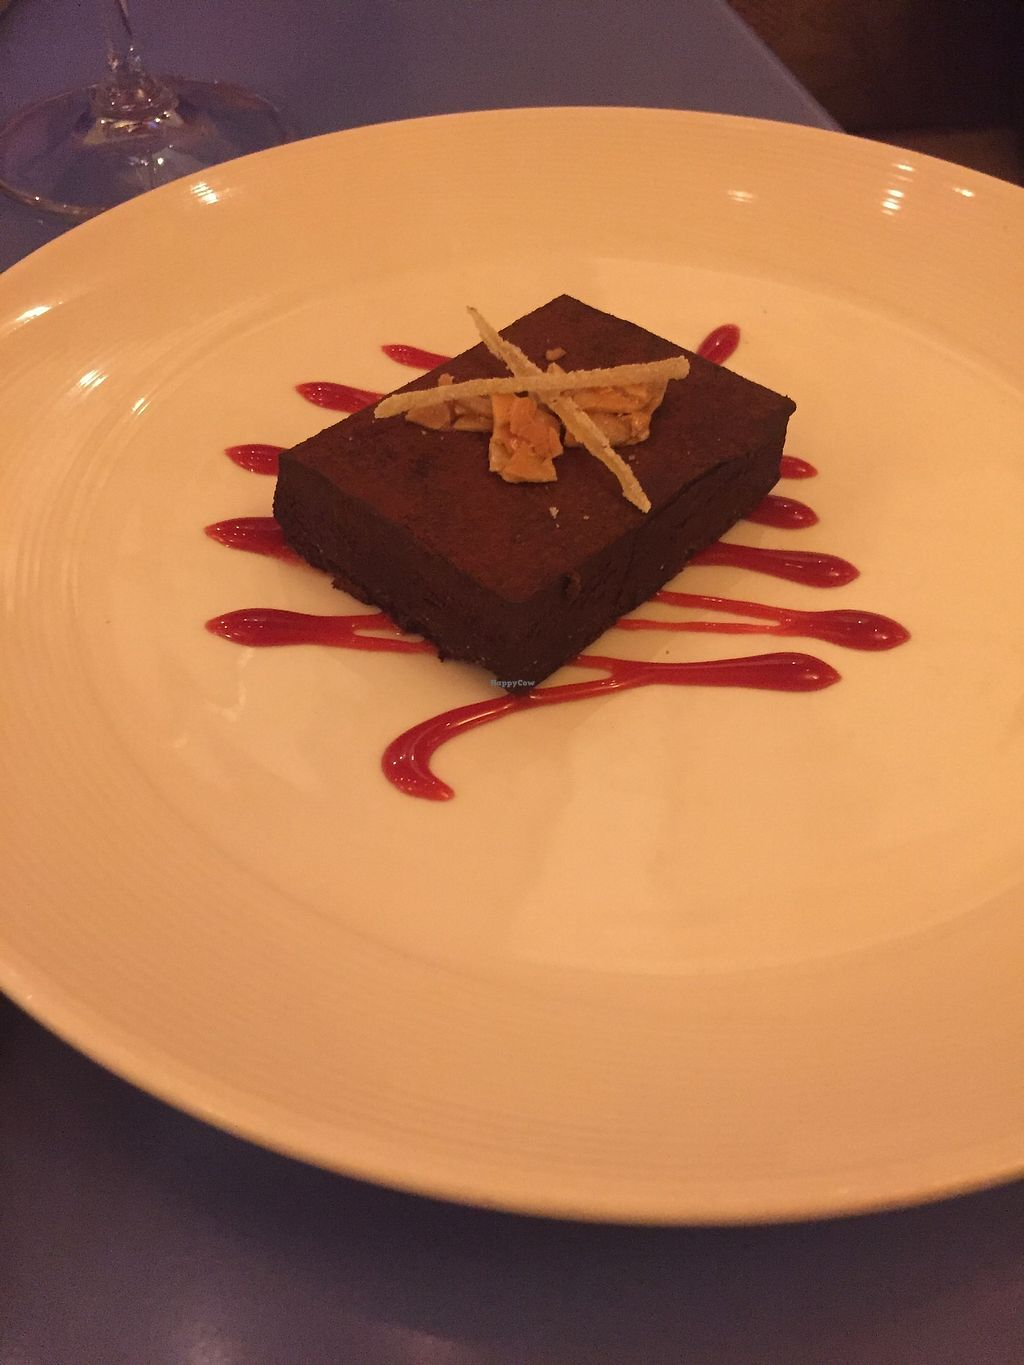 """Photo of Mia Tapas Bar & Restaurant  by <a href=""""/members/profile/KaitlynnGill"""">KaitlynnGill</a> <br/>Vegan chocolate tart <br/> November 25, 2017  - <a href='/contact/abuse/image/105870/328873'>Report</a>"""